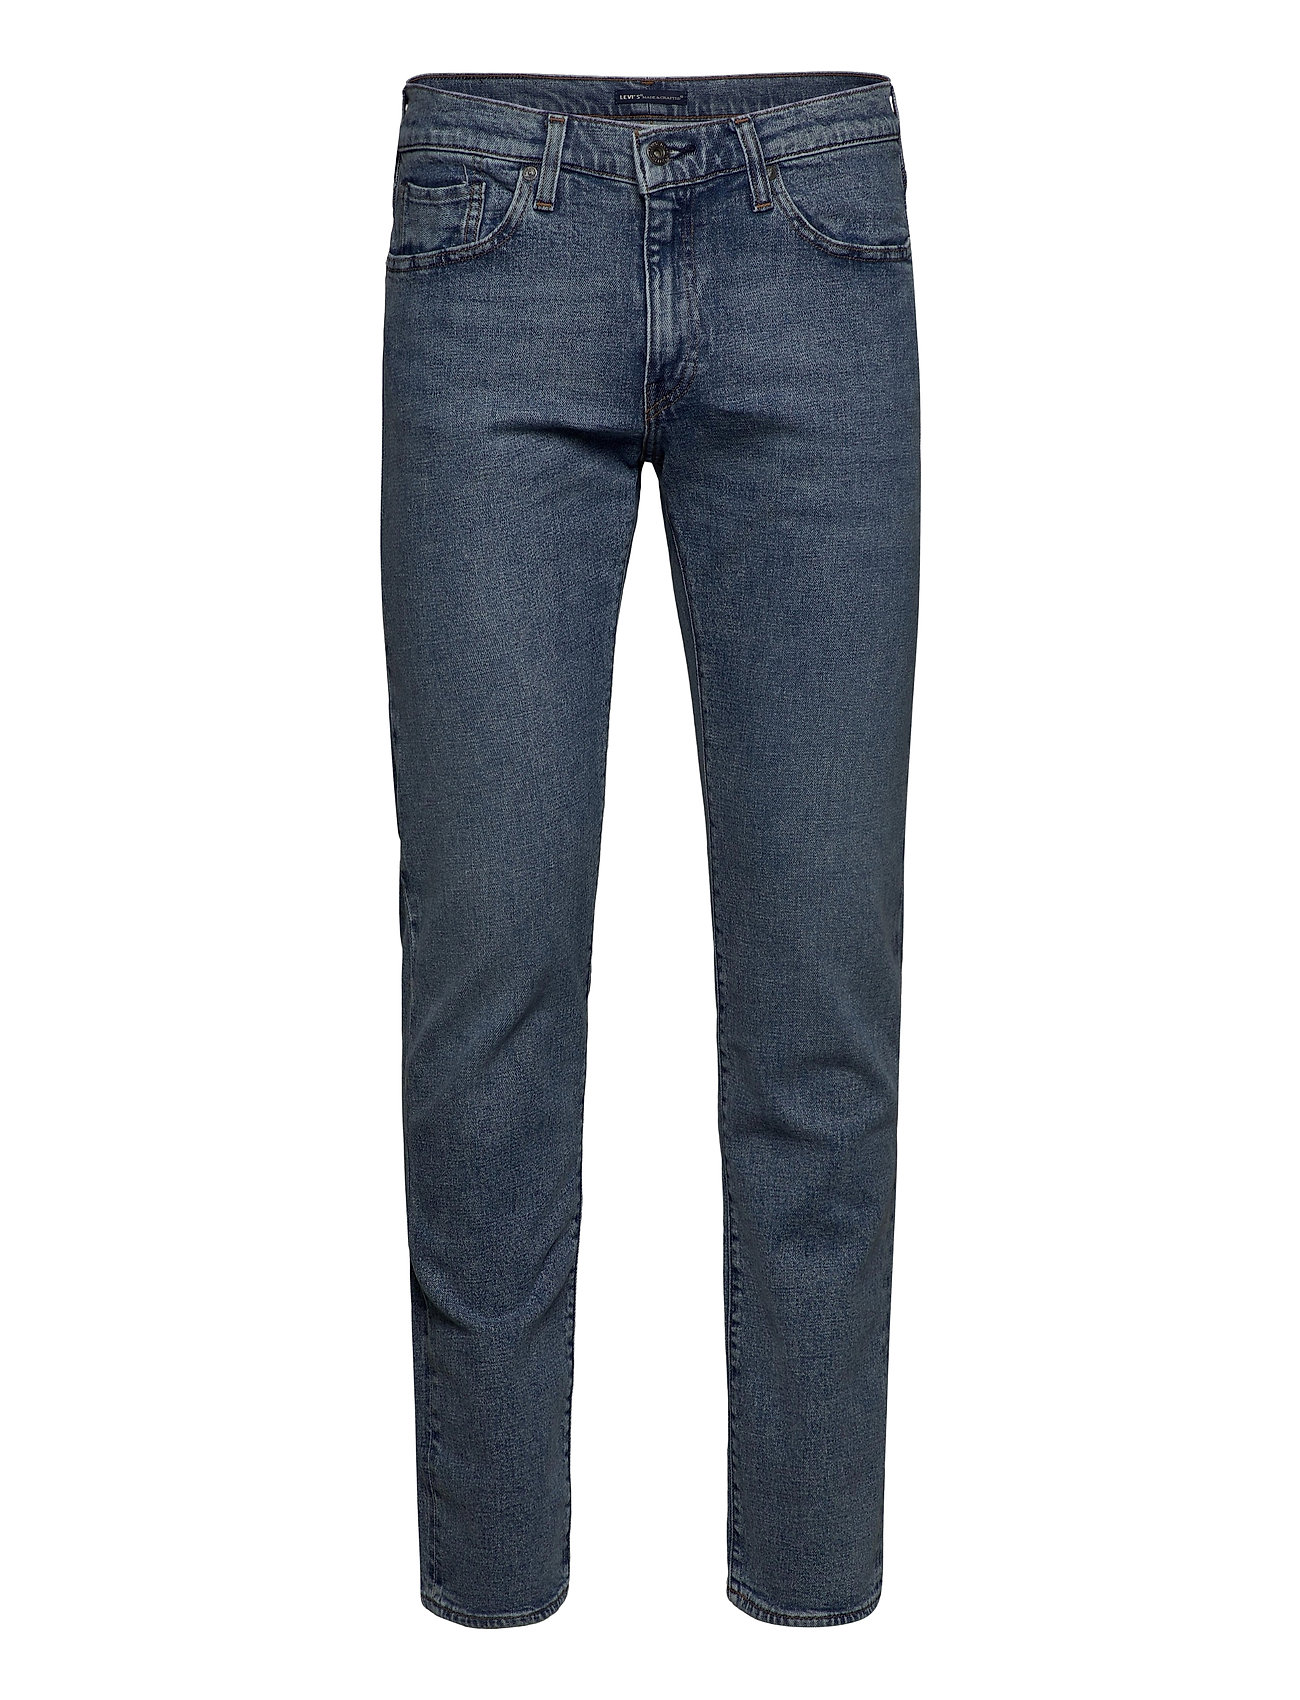 Image of Lmc 511 Lmc Alpine Blue Slim Jeans Blå Levi's Made & Crafted (3440542583)